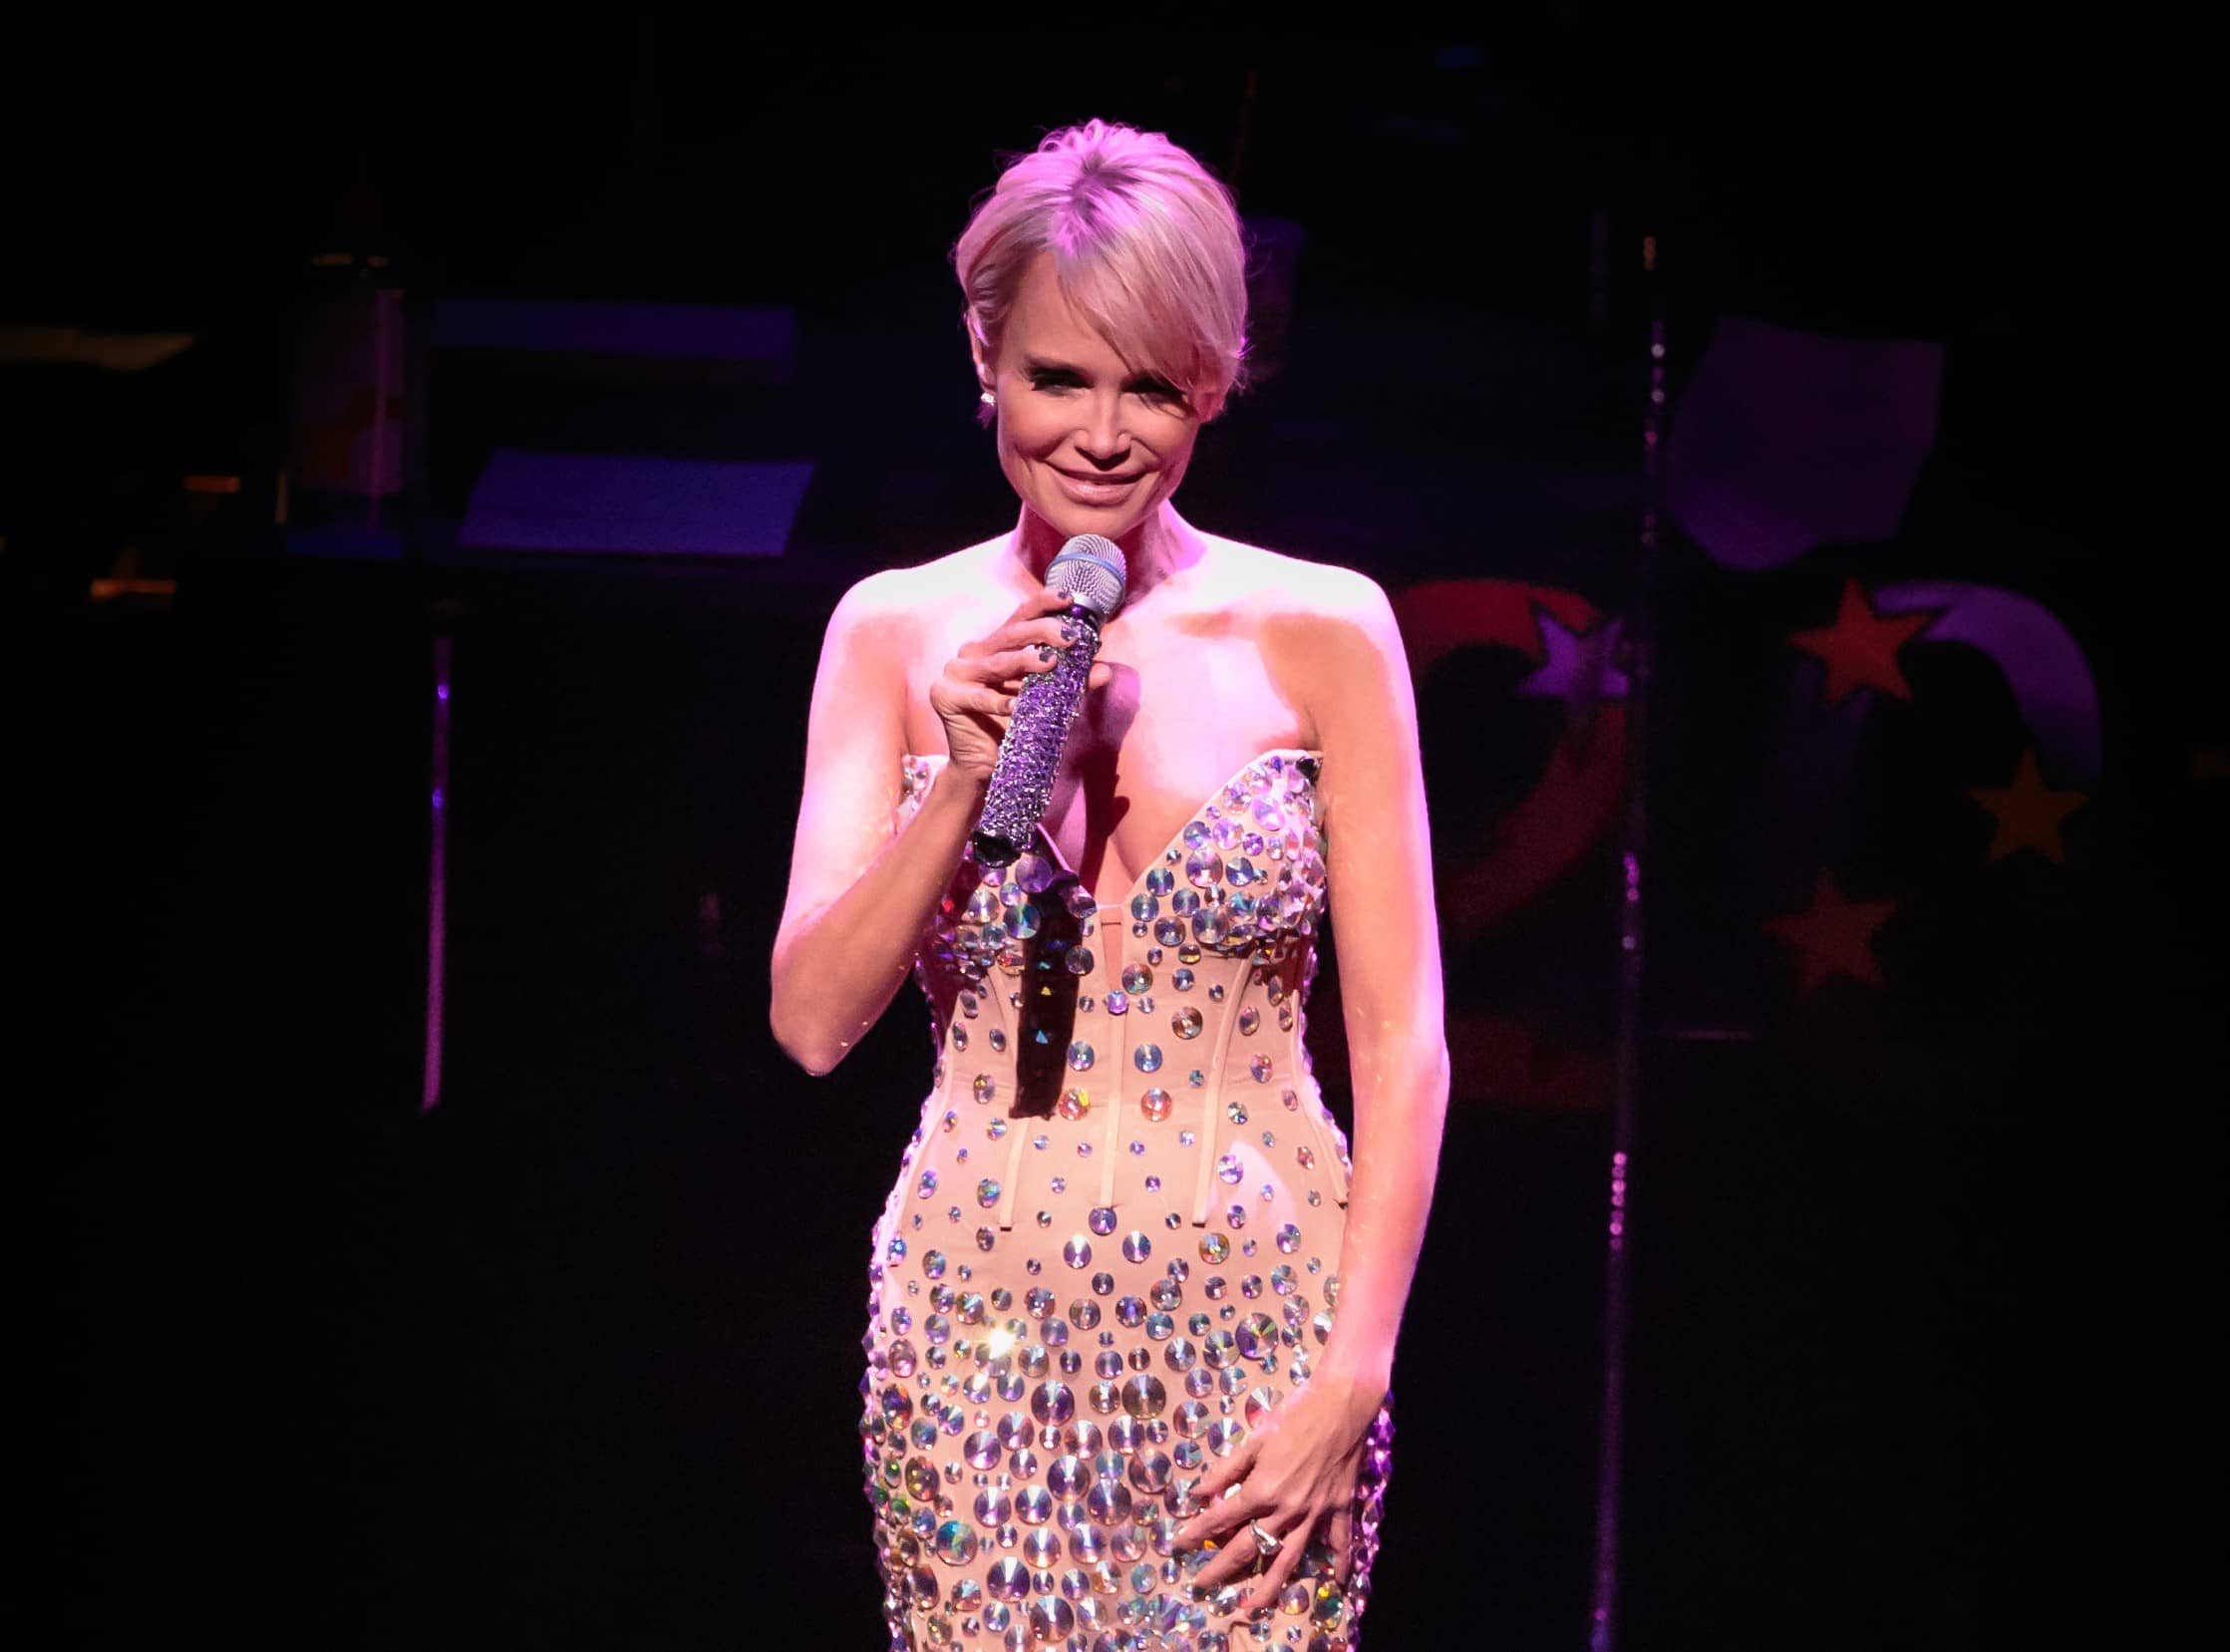 Kristin Chenoweth performing at The Smith Center